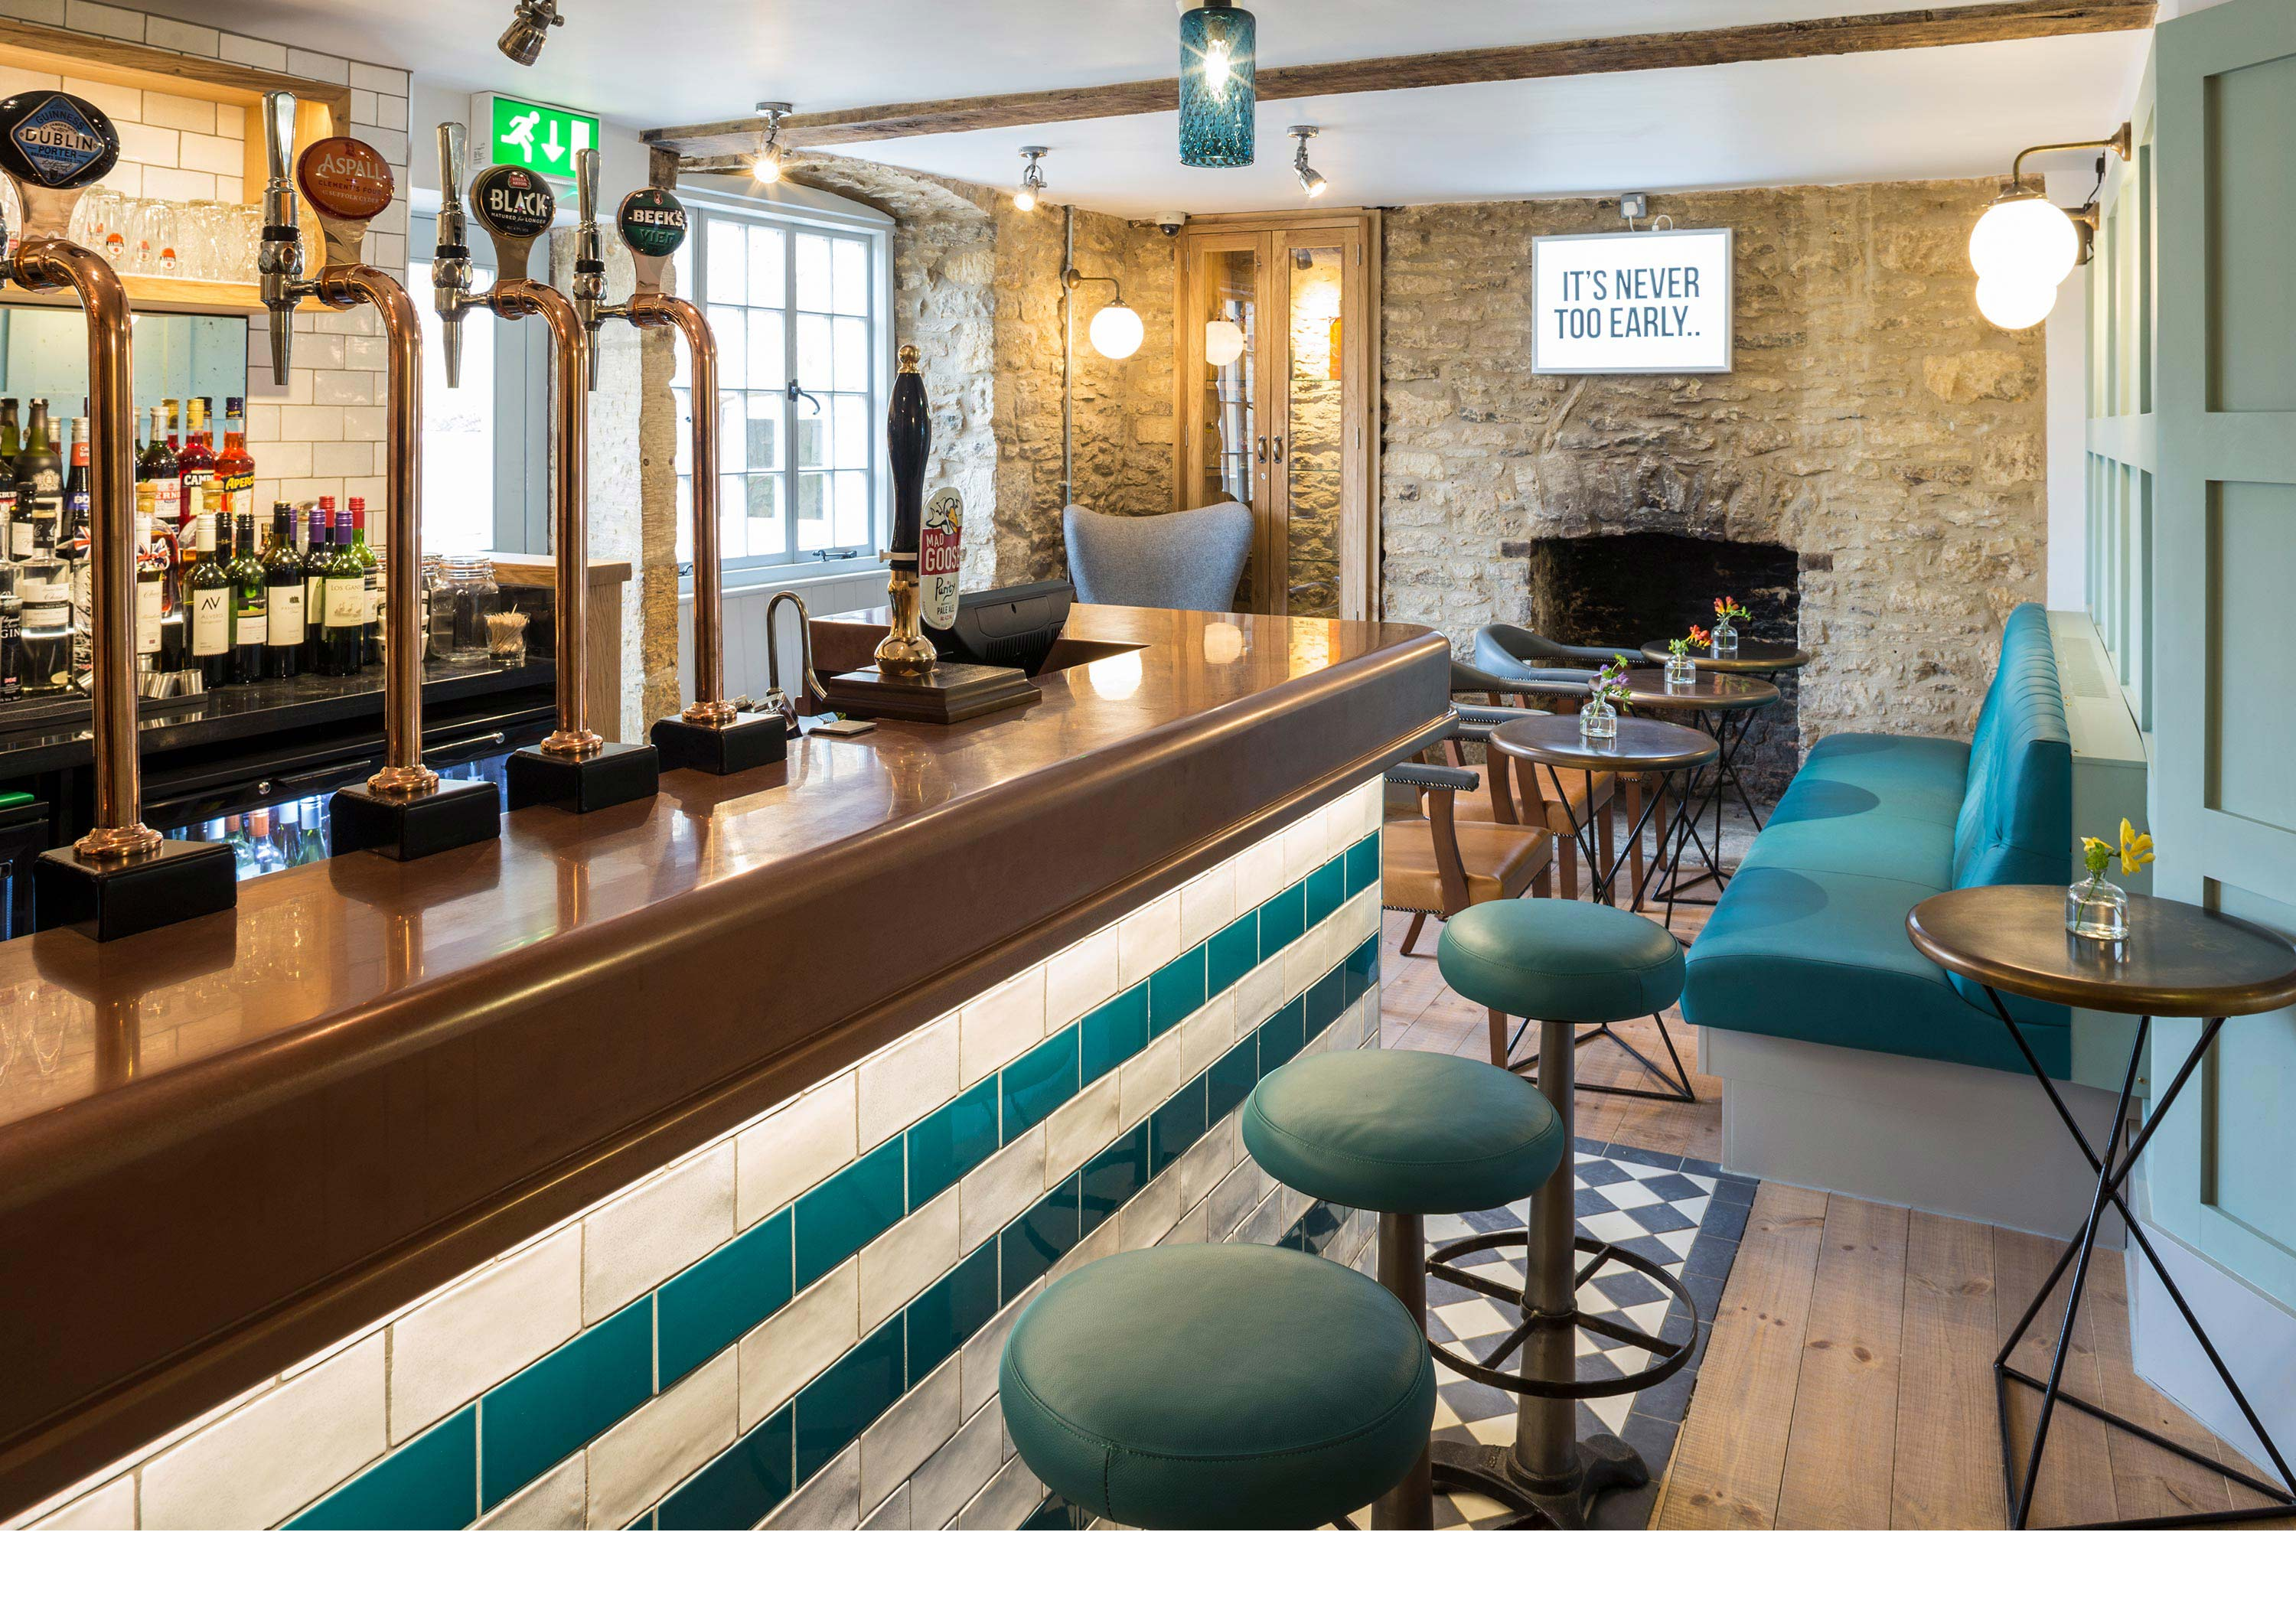 Bar photography for The Old Stocks Inn by Mighty, hotel marketing agency